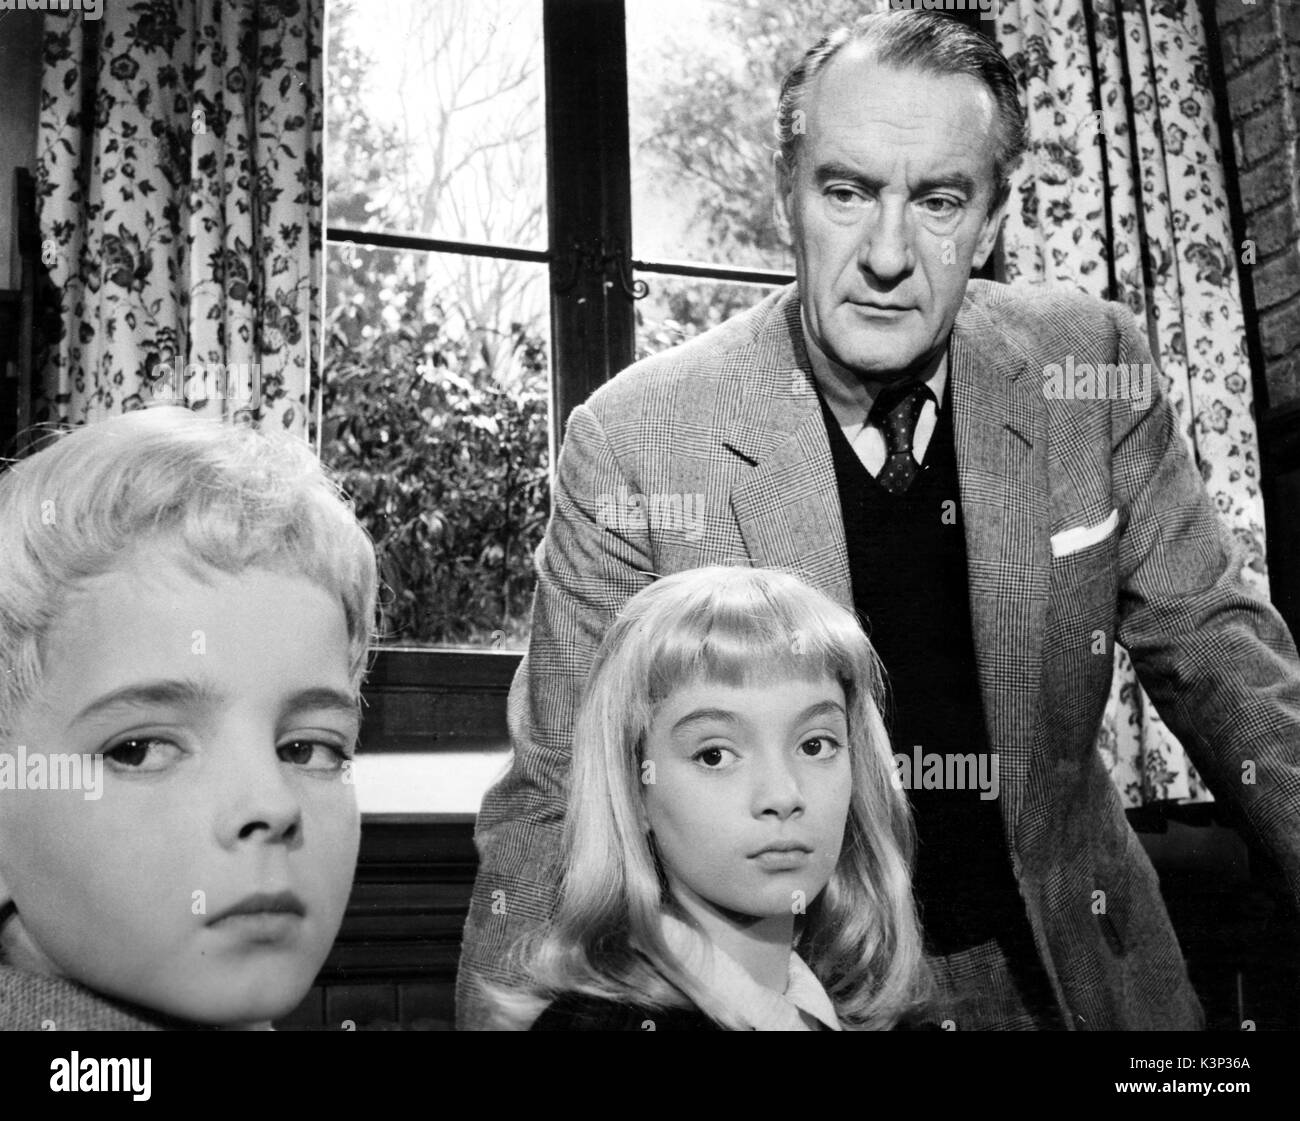 VILLAGE OF THE DAMNED [BR 1960] MARTIN STEPHENS, JUNE COWELL, GEORGE SAUNDERS     Date: 1960 Stock Photo